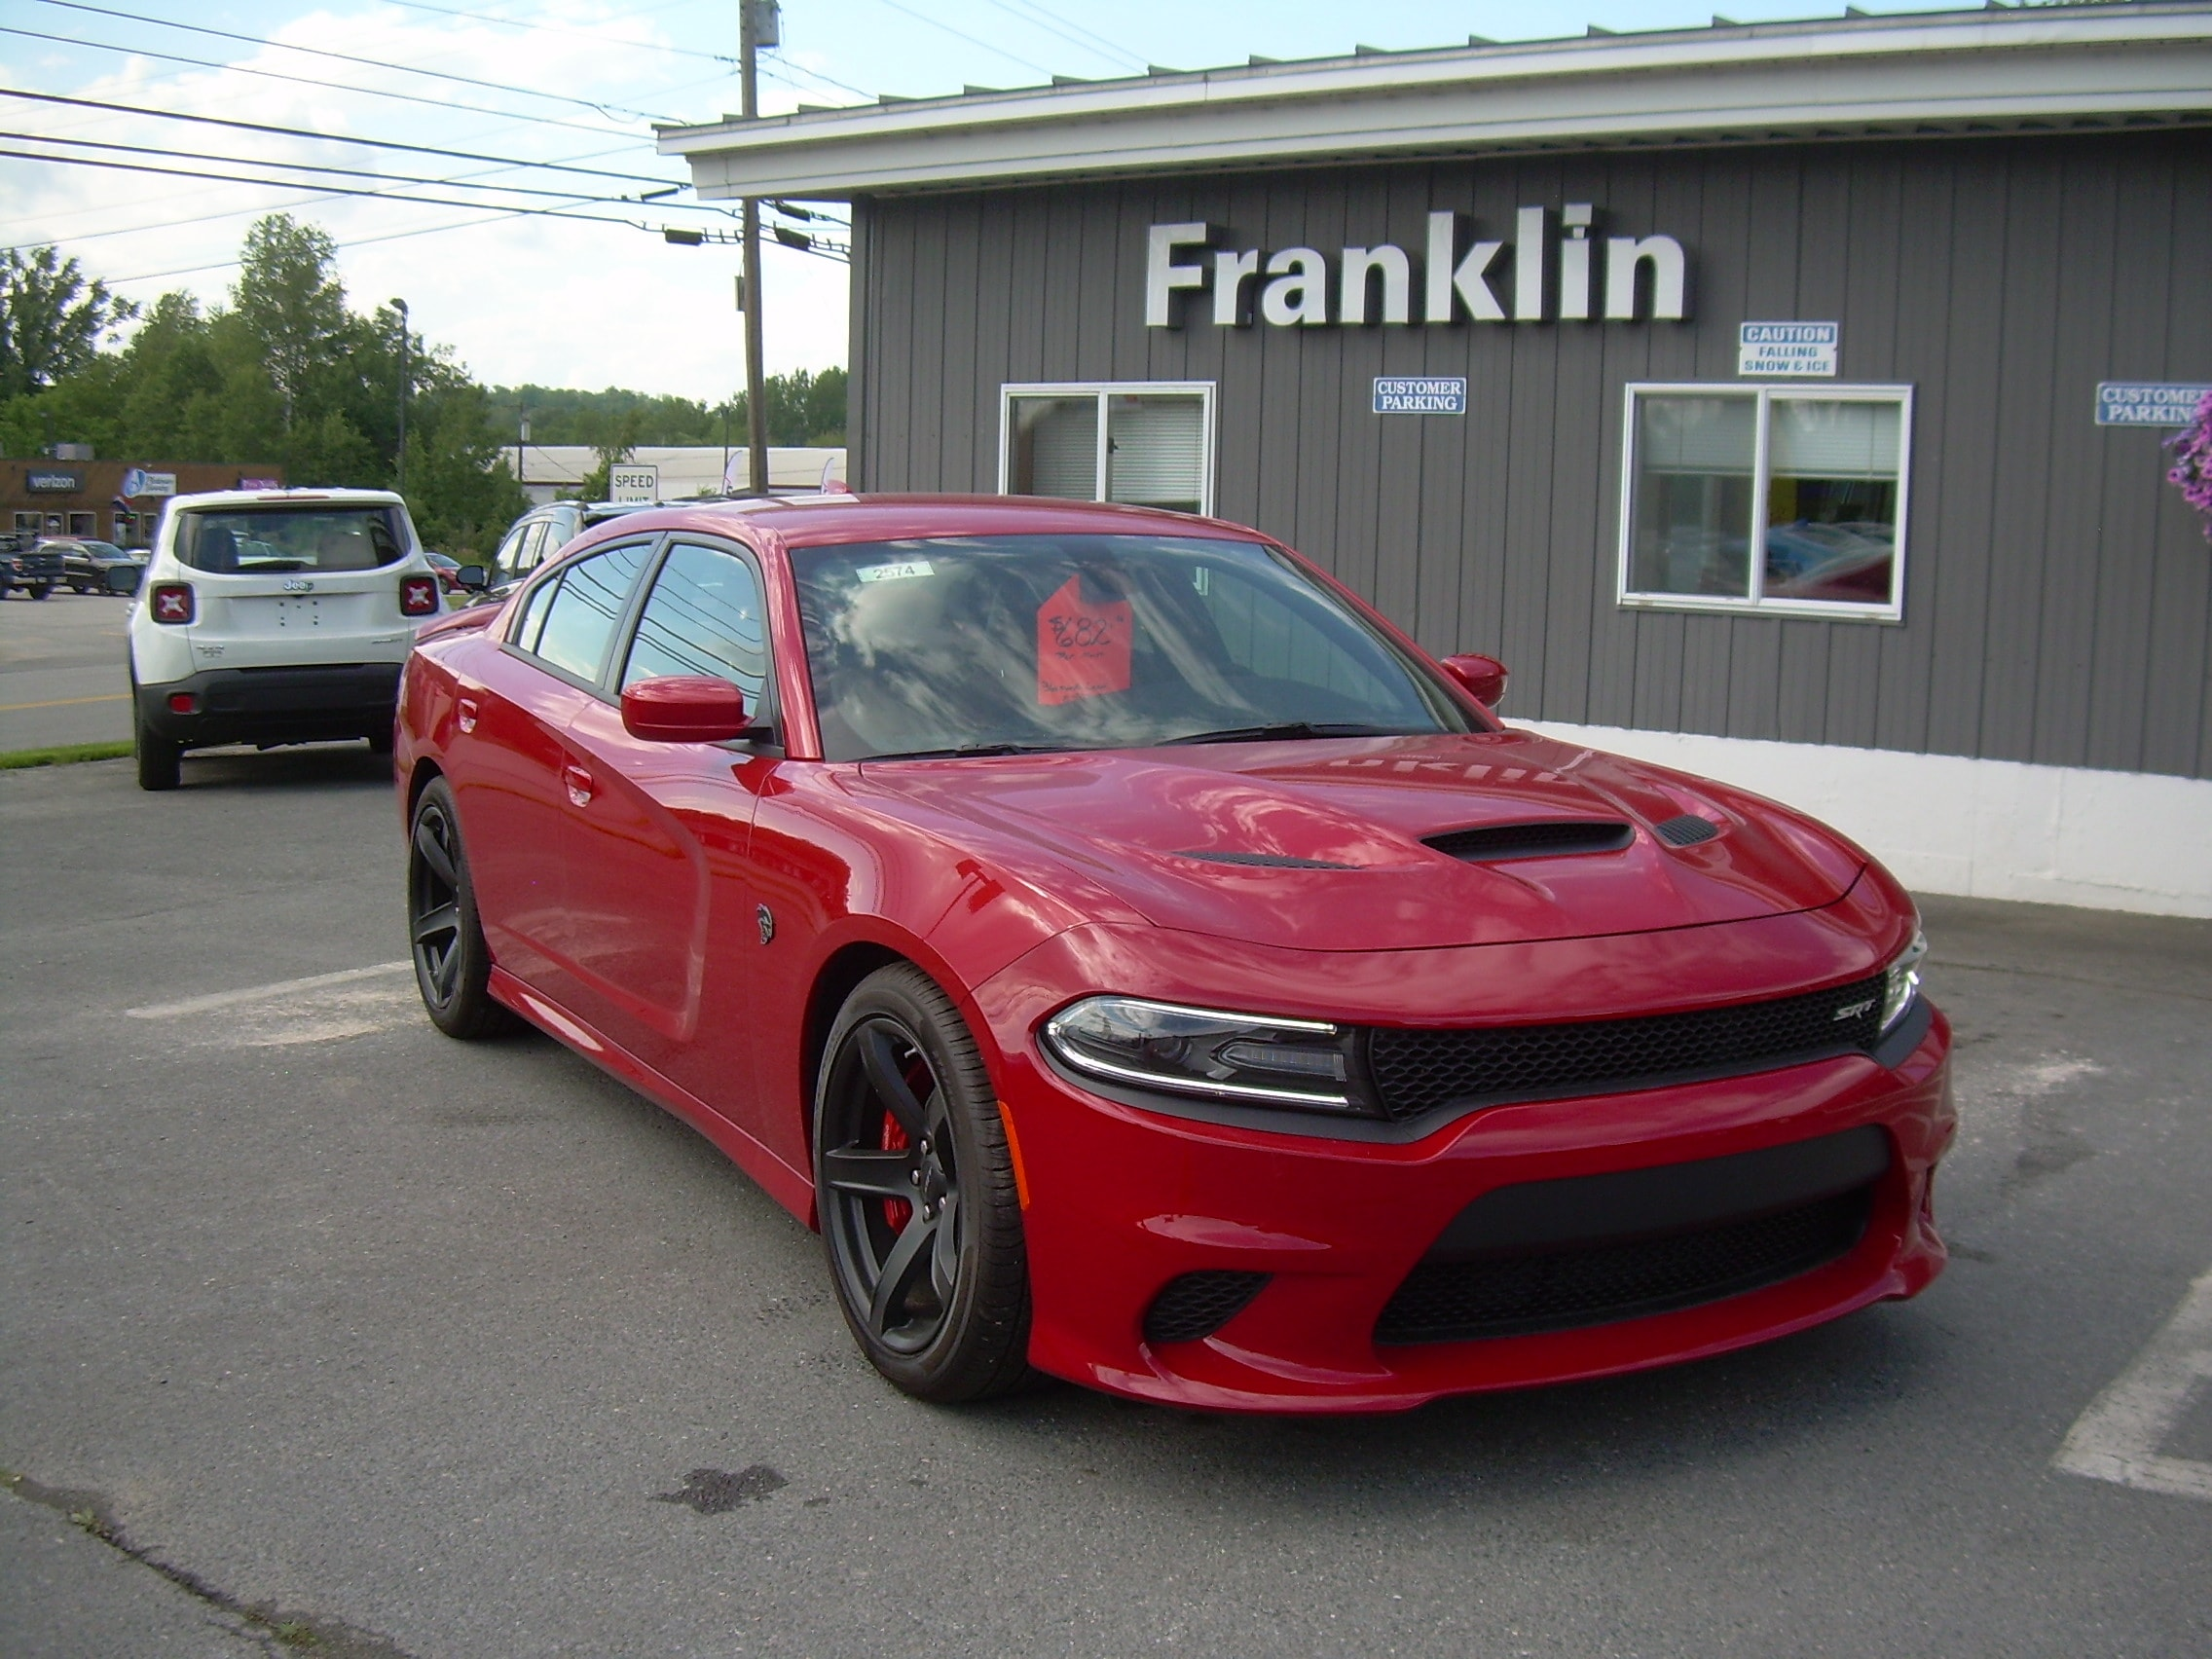 FRANKLIN CHRYSLER | Vehicles for sale in Farmington, ME 04938